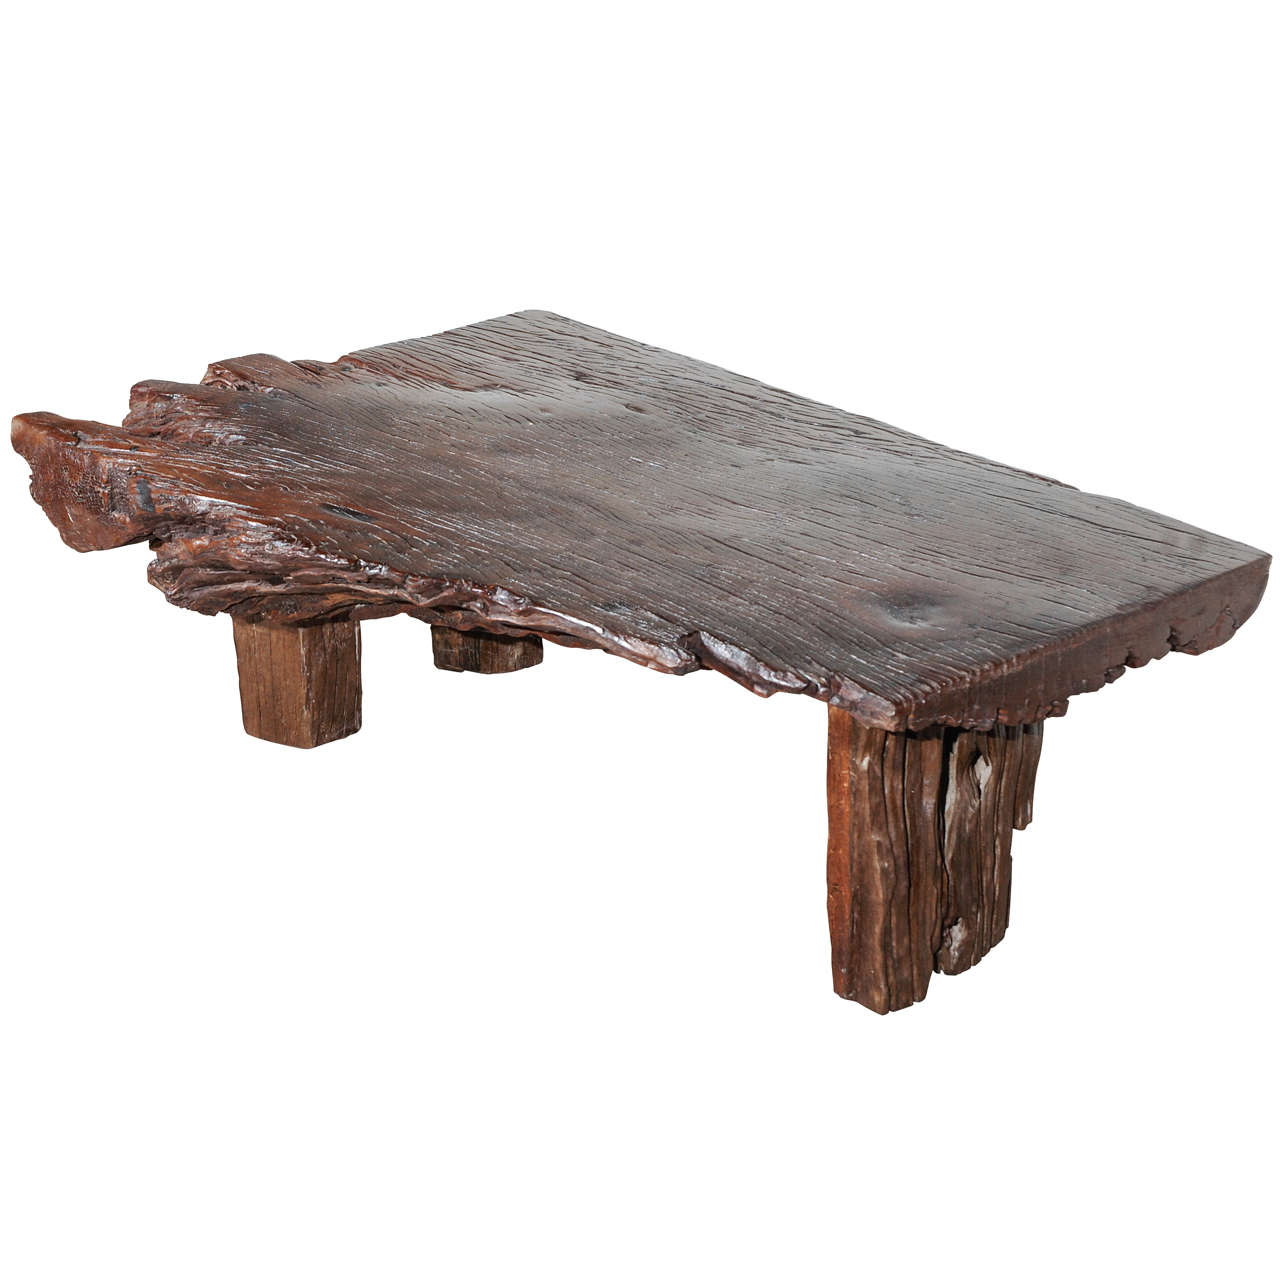 Reclaimed wood slab coffee table for sale at 1stdibs for Reclaimed teak wood coffee table